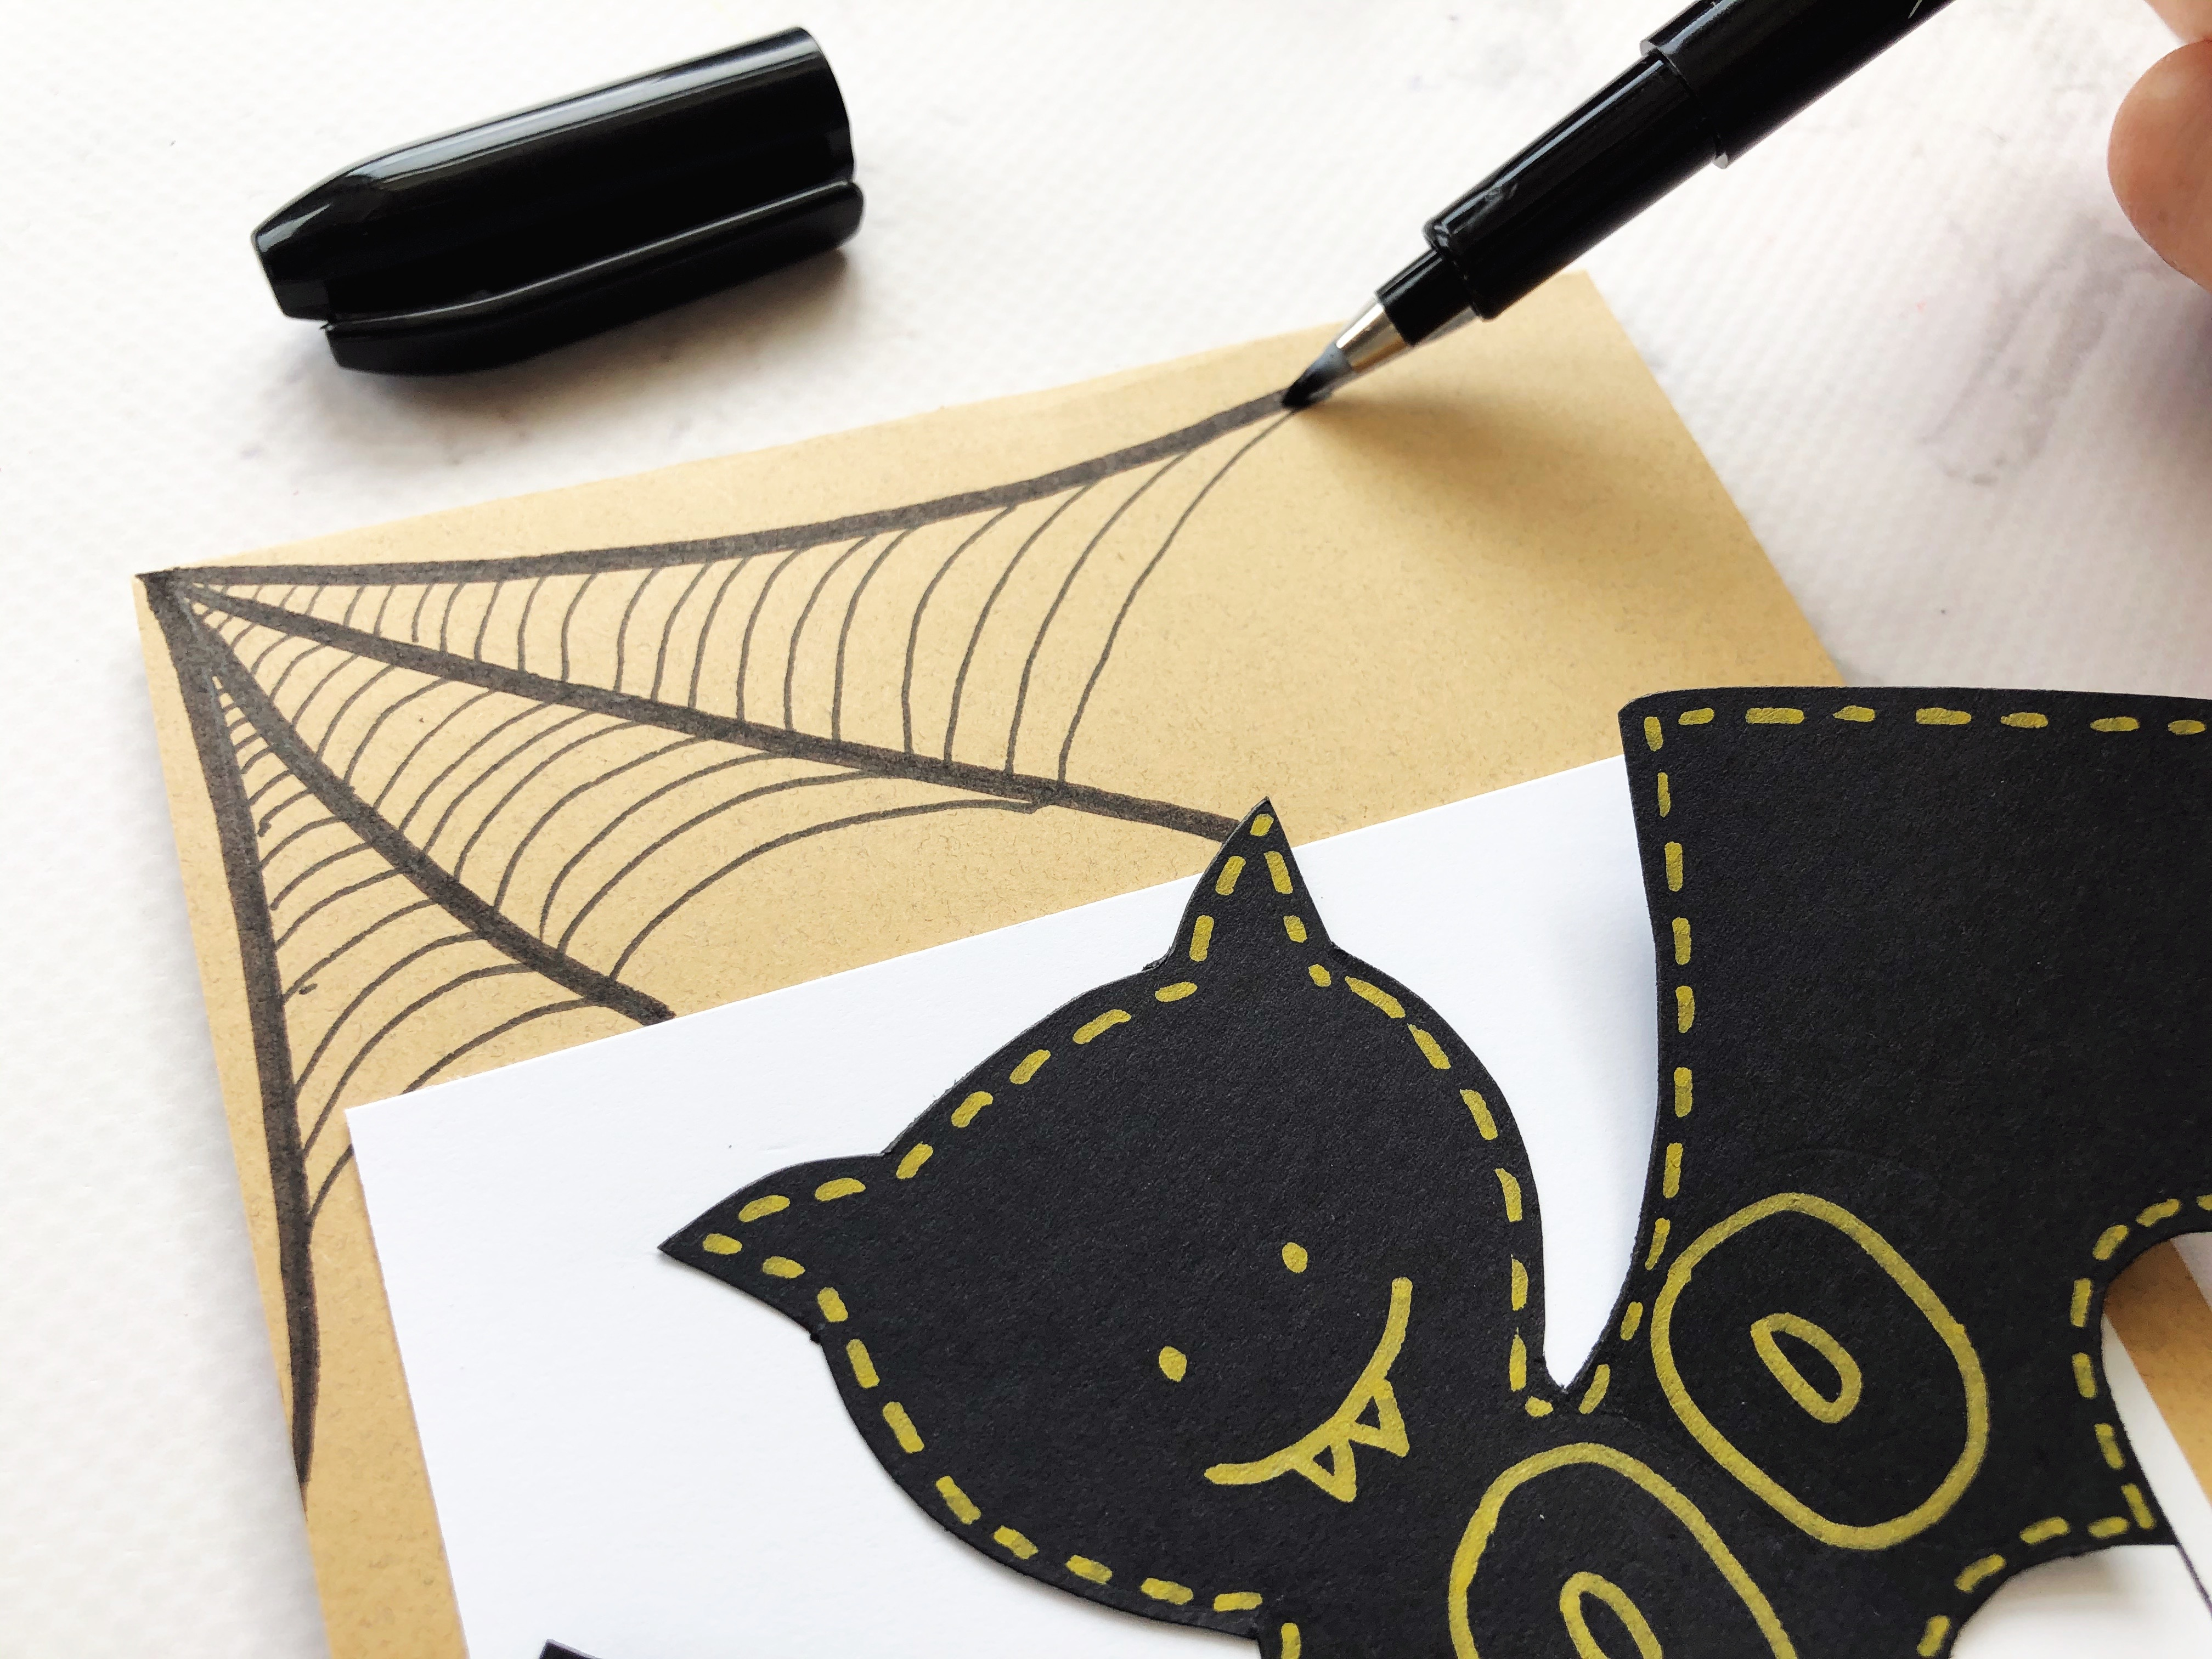 Outlining a hand drawn spider web on a halloween card using a Kelly Creates Black fine liner brush pens.